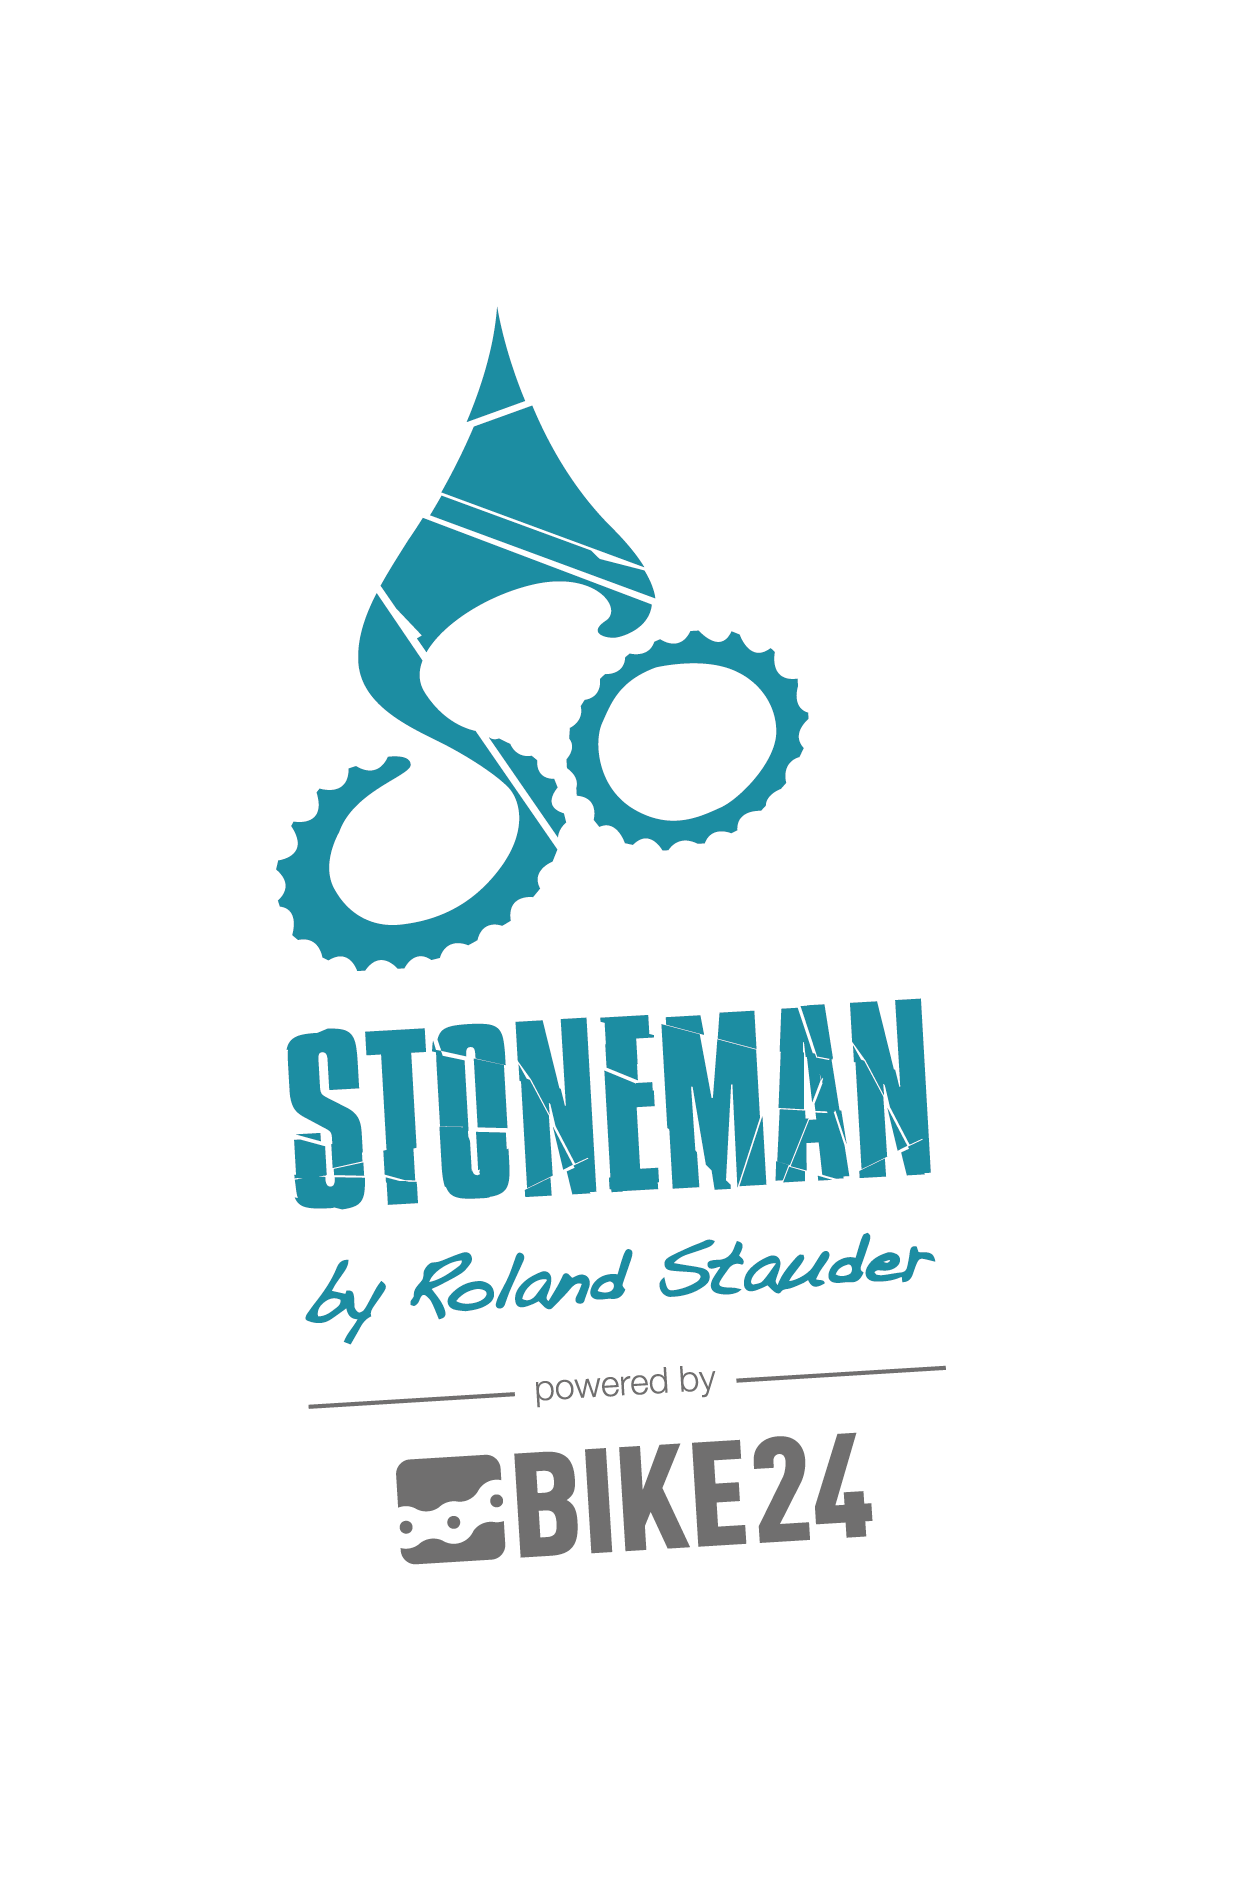 Stoneman by Roland Stauder powered by BIKE24